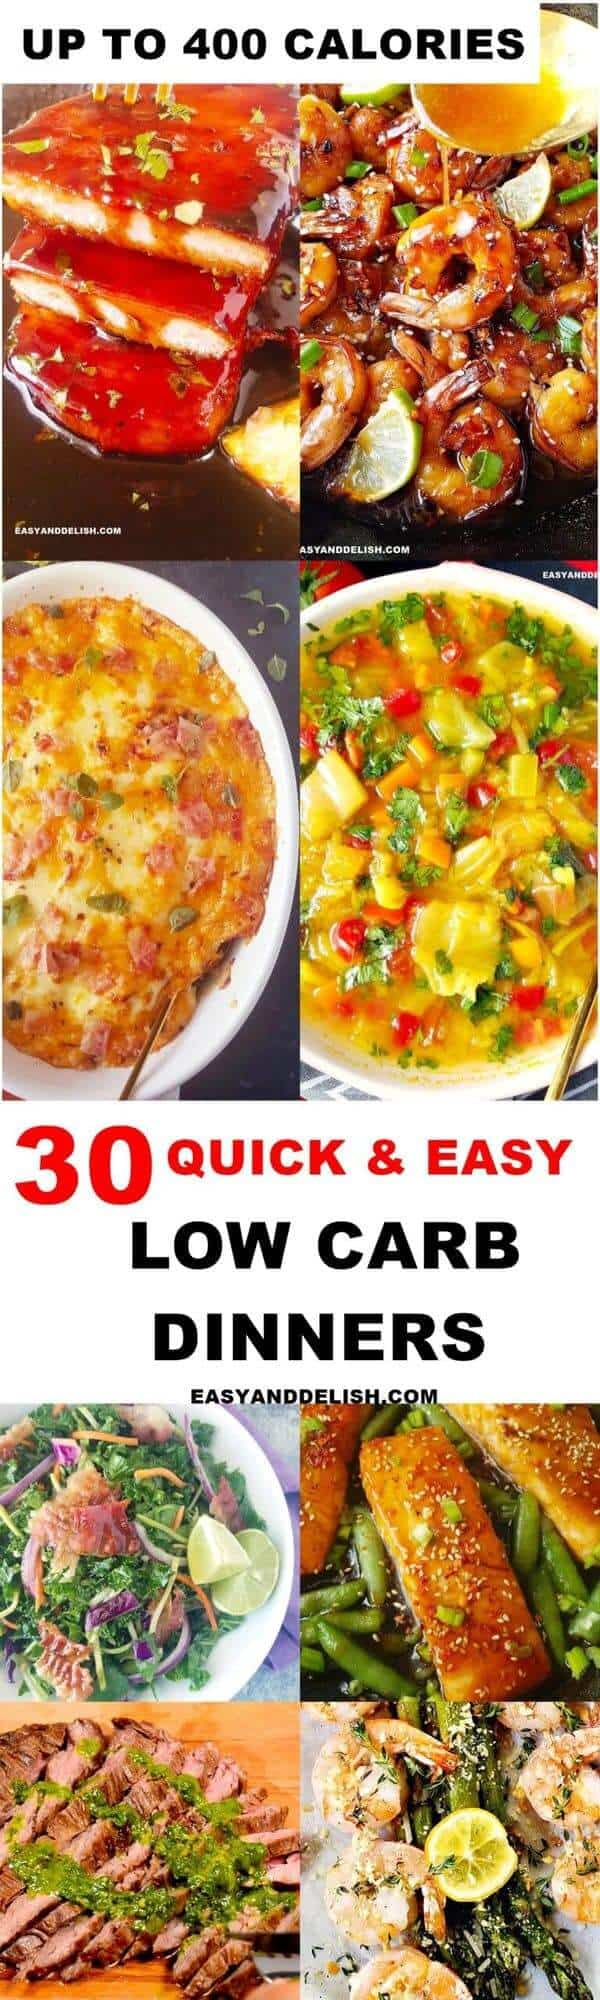 a photo collage with 8 images of quick and easy low carb dinners